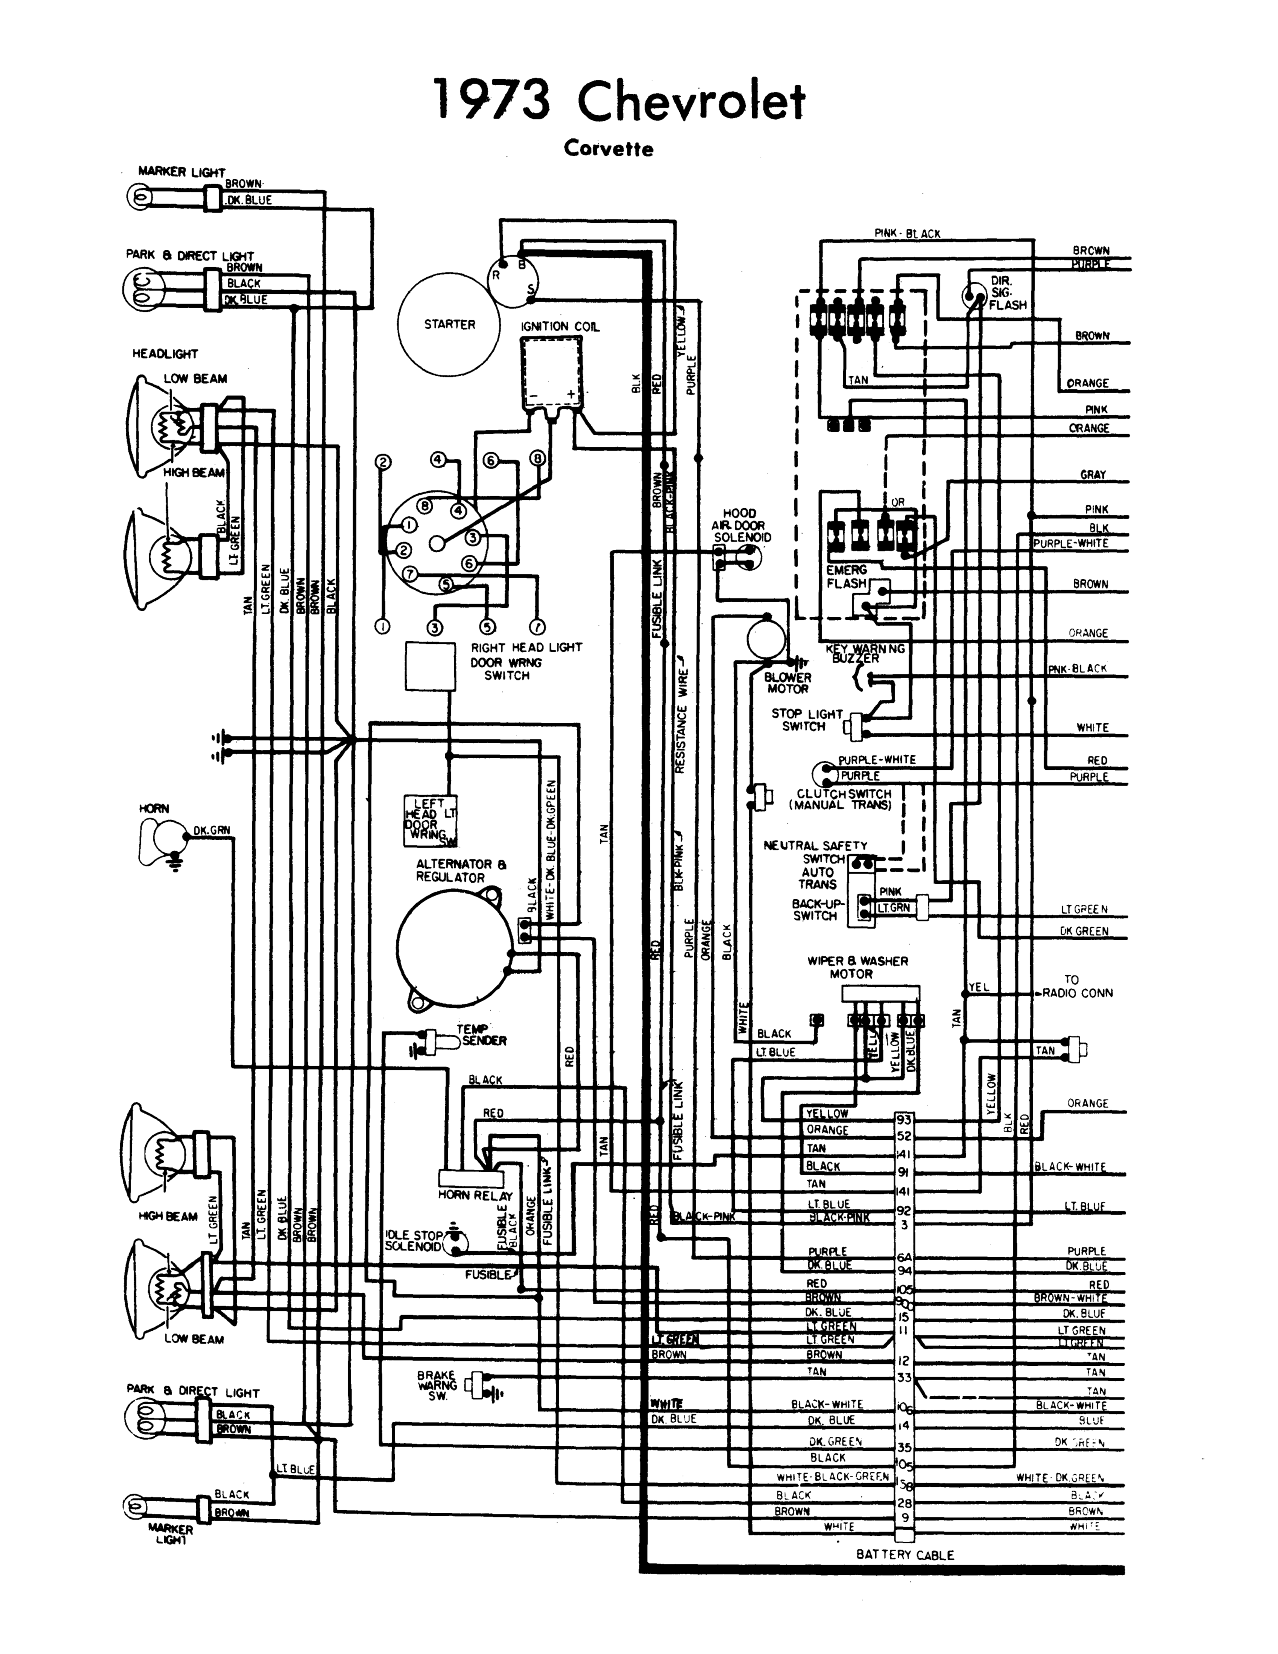 Wiring Diagram 74 Corvette Stingray House Symbols G650x 73 Circuit And Hub U2022 Rh Bdnewsmix Com 1974 Fuse